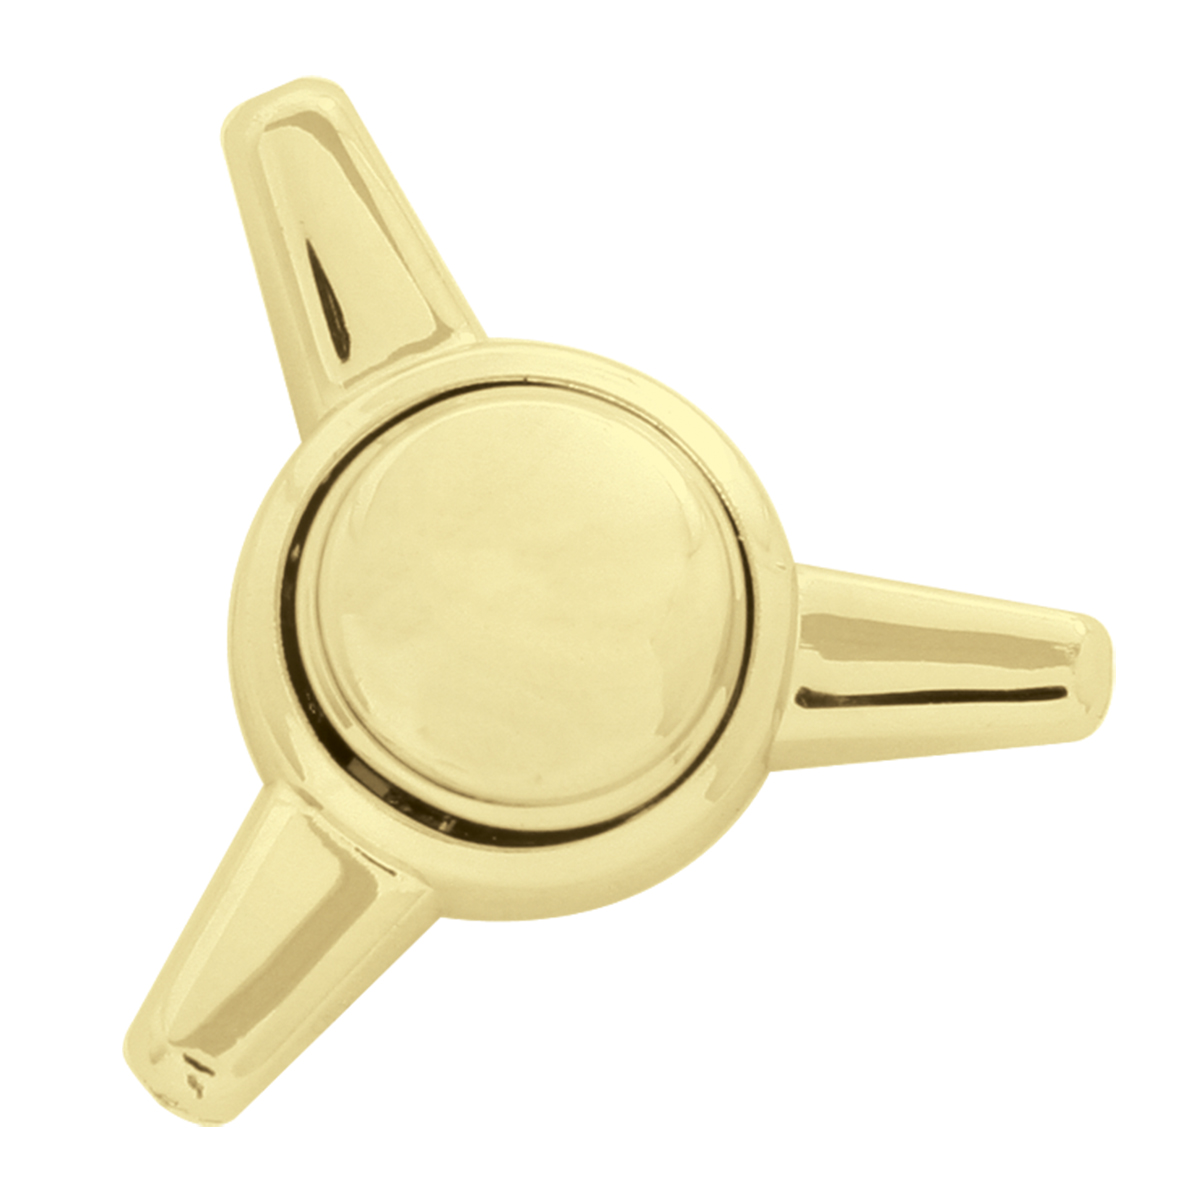 Brass Plated Screw Head Covers in Spinner Snap-On Style